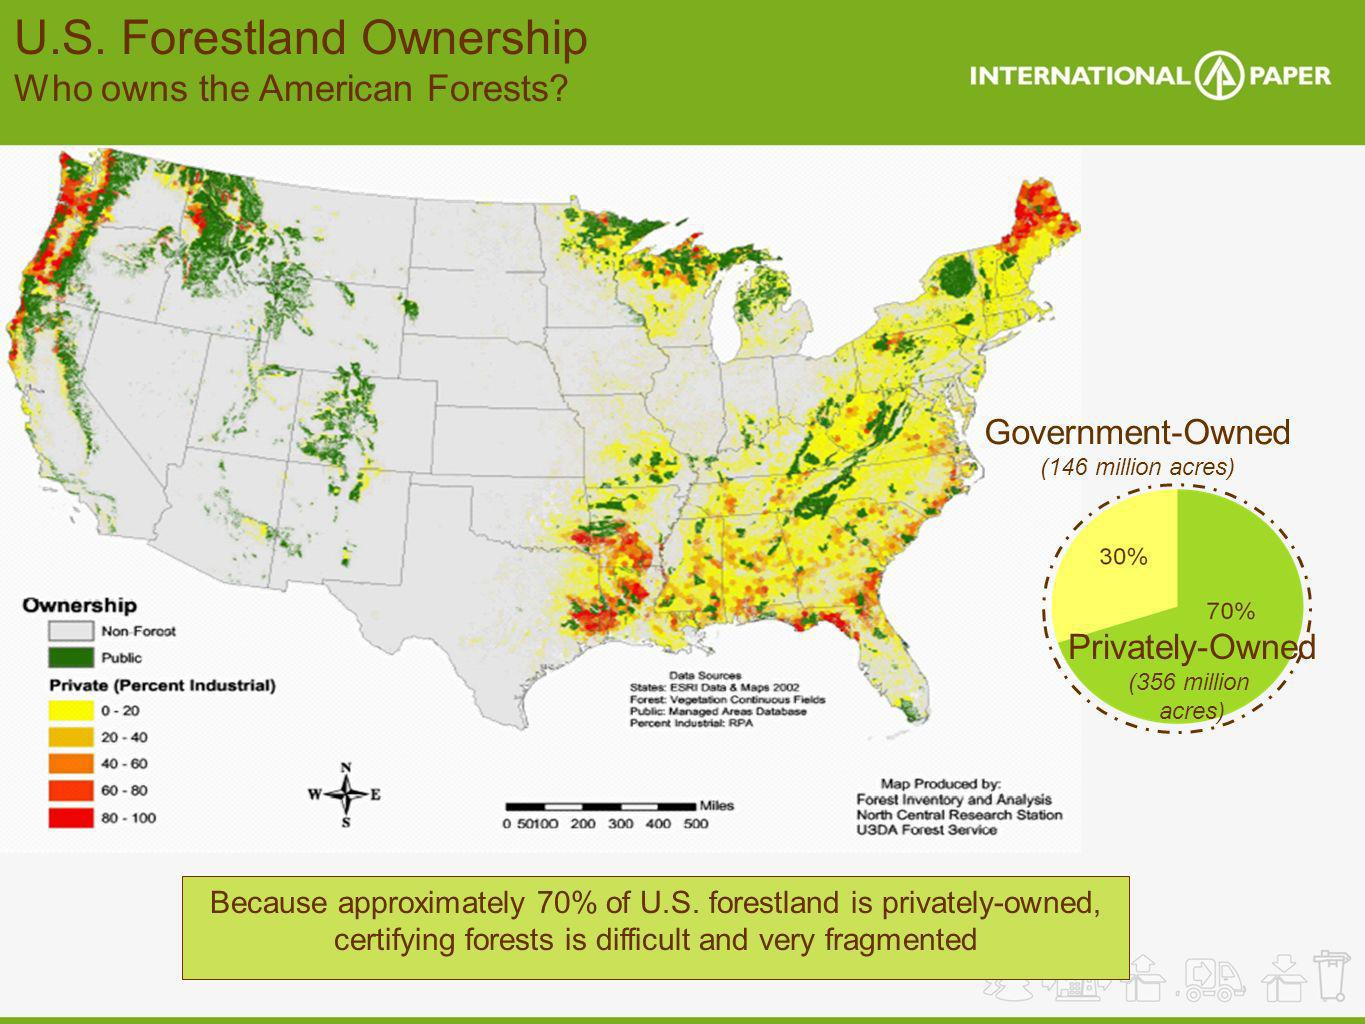 U.S. Forestland Ownership